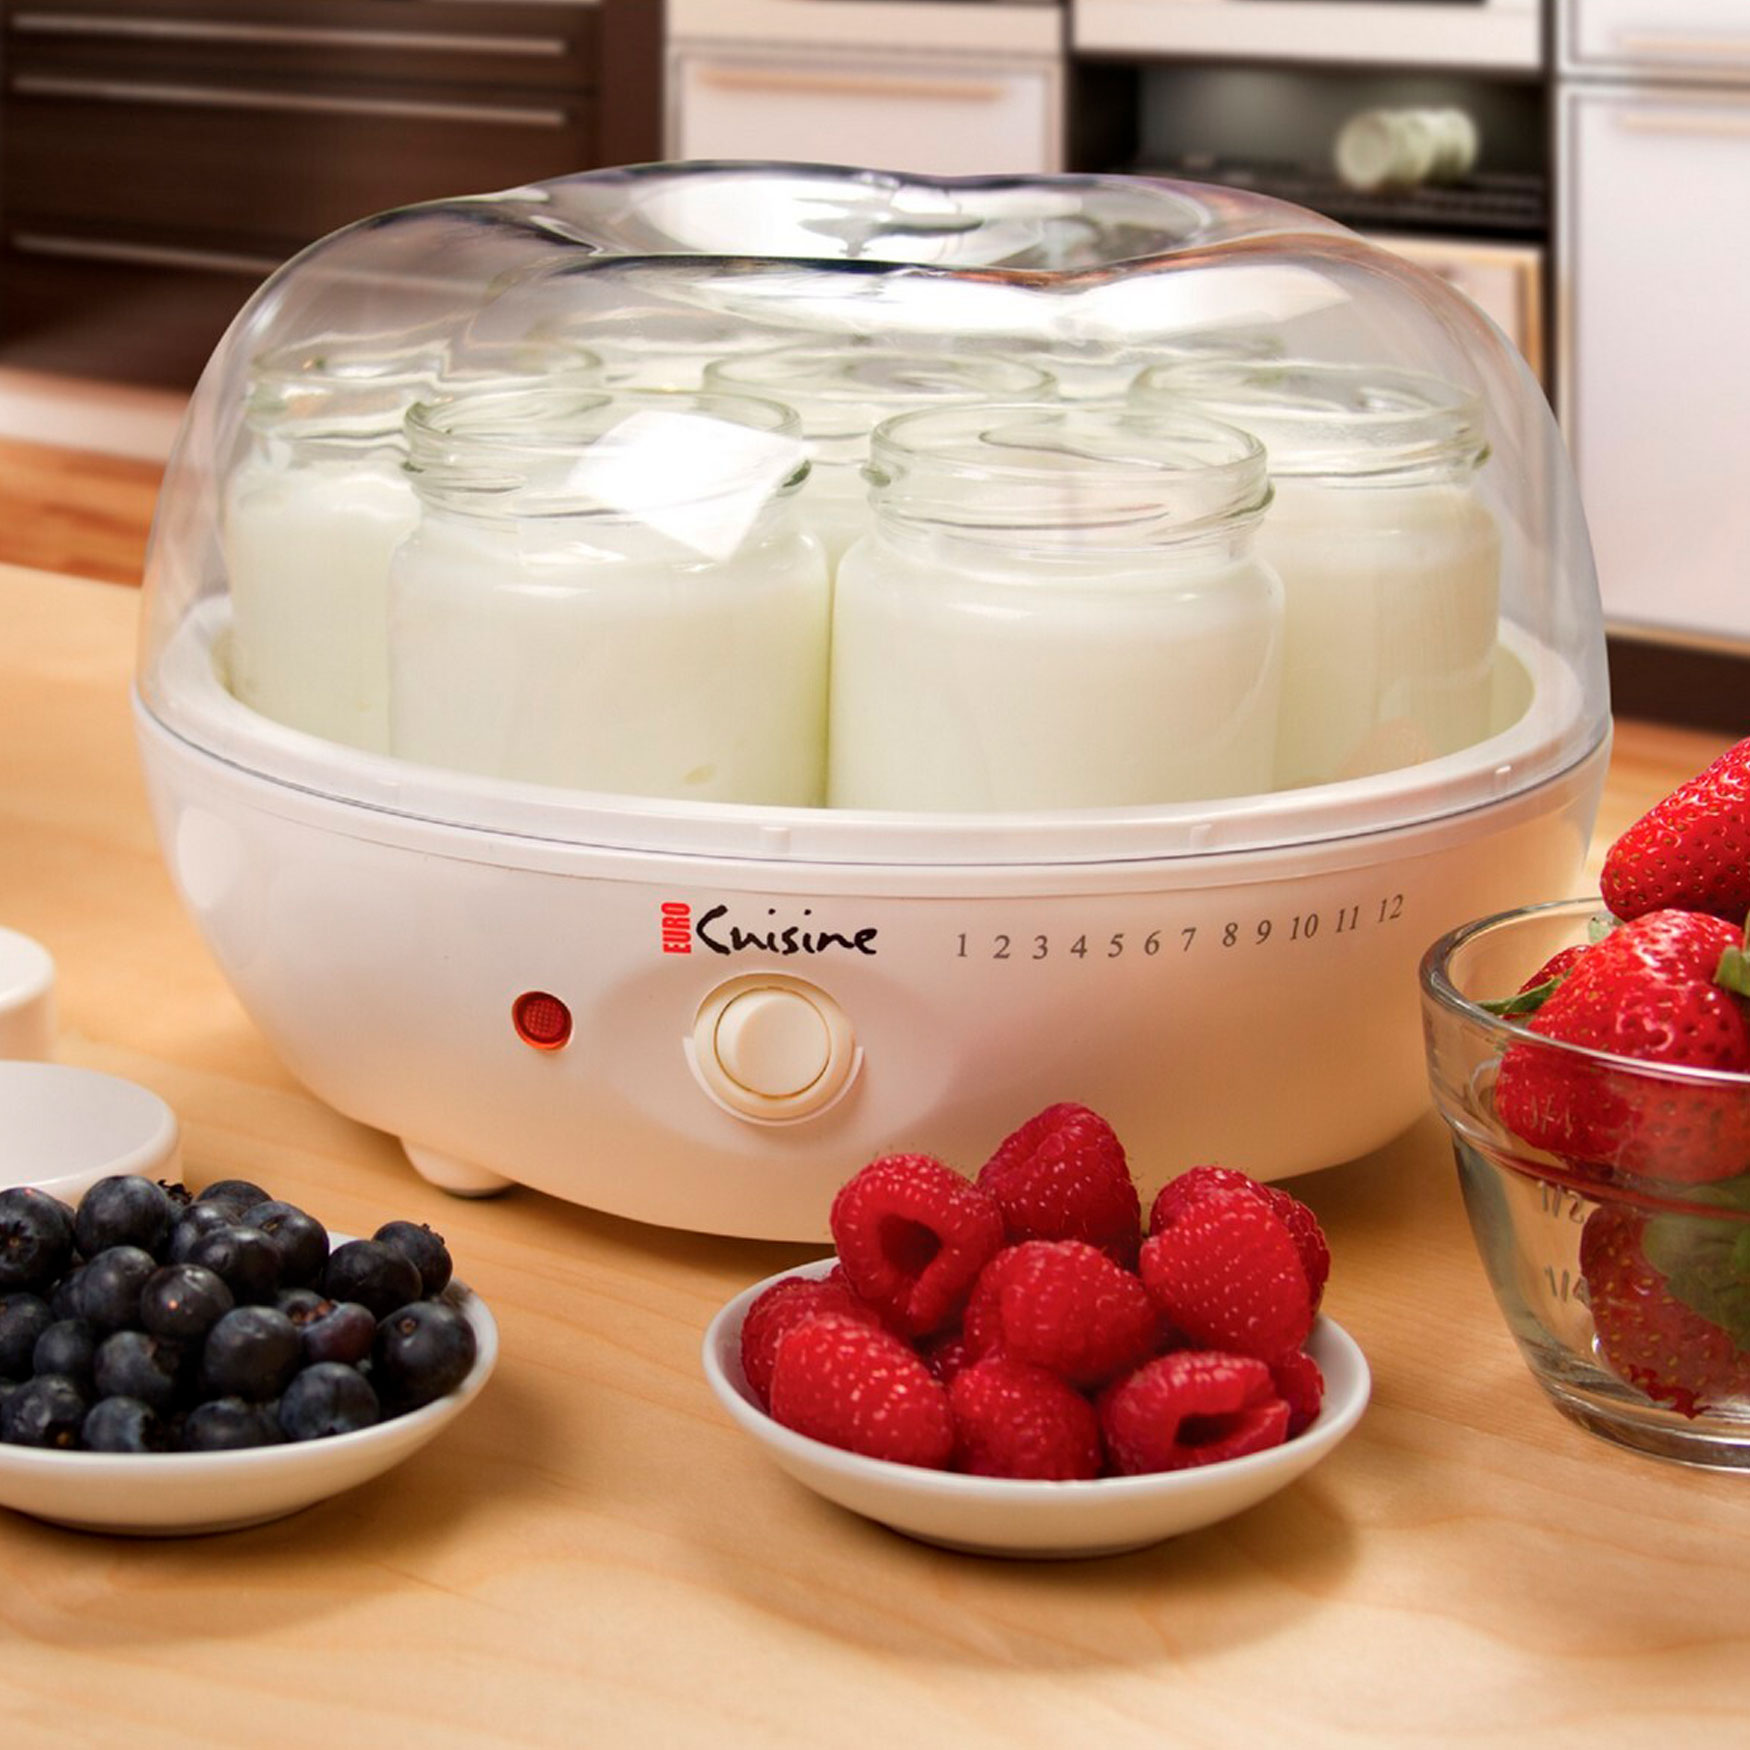 Euro Cuisine Electric Yogurt Maker with 7 Glass Jars, WHITE